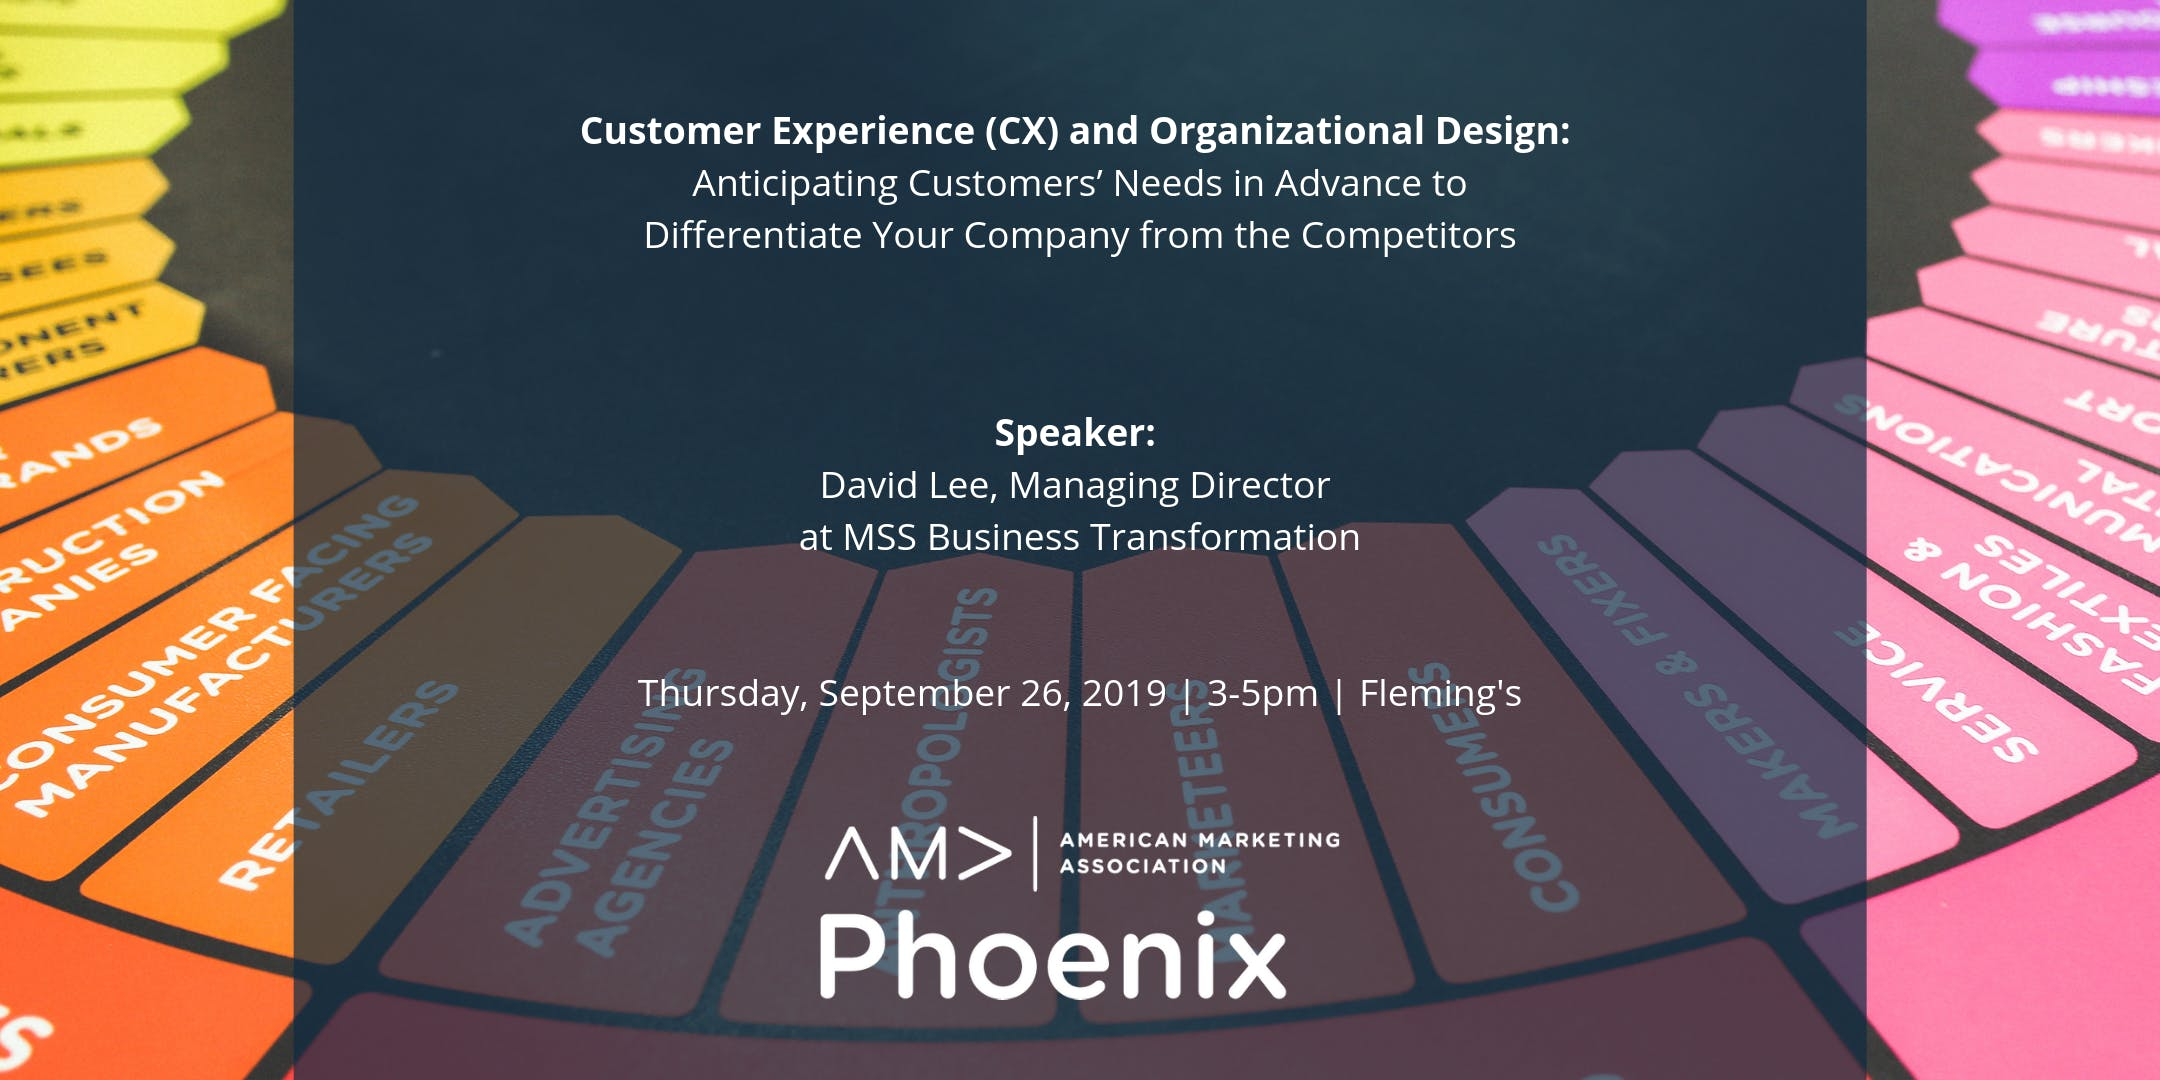 Customer Experience (CX) and Organizational Design: Anticipating Customers' Needs in Advance to Differentiate Your Company from the Competitors